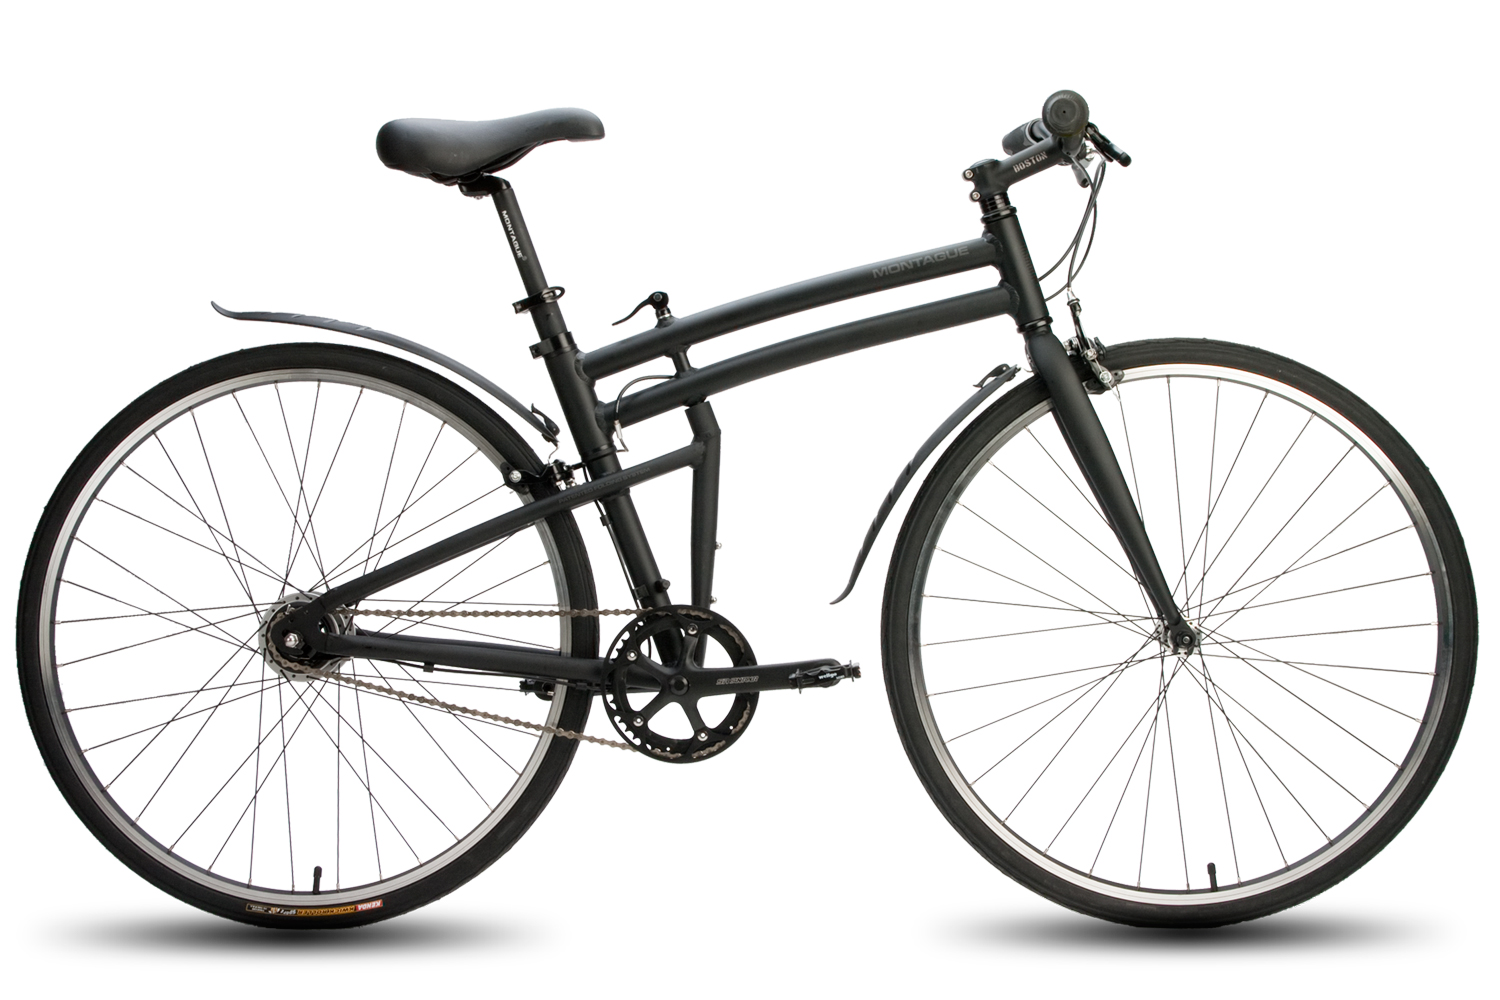 2011 Boston 8 Pavement Folding Bike